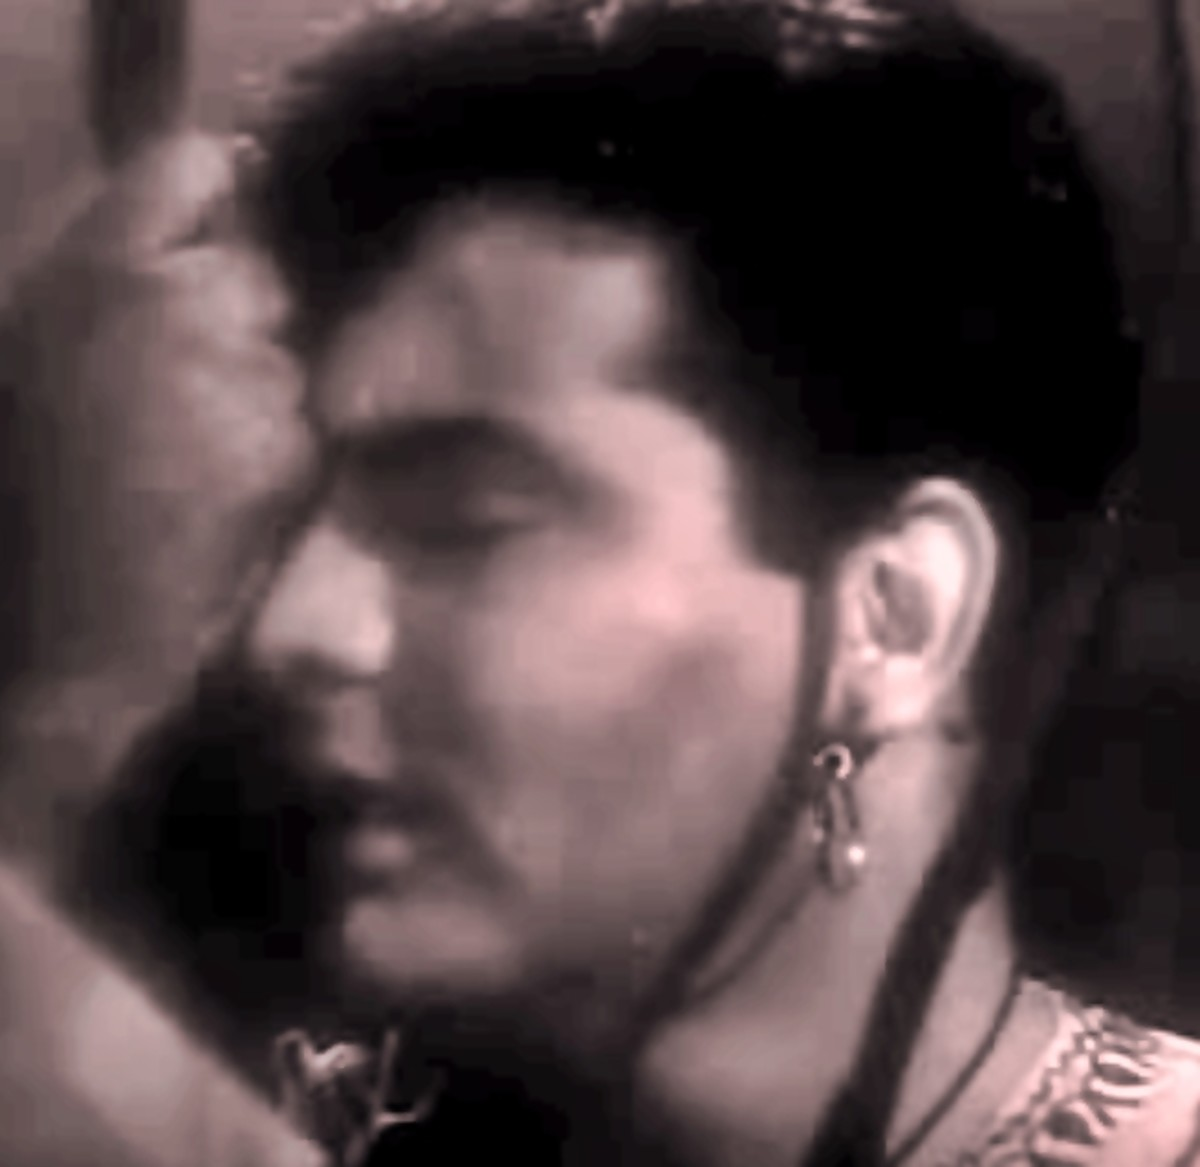 A Great Song Expressing the Emotions from the Heart, with Raag Darbari Kanada at its Aid